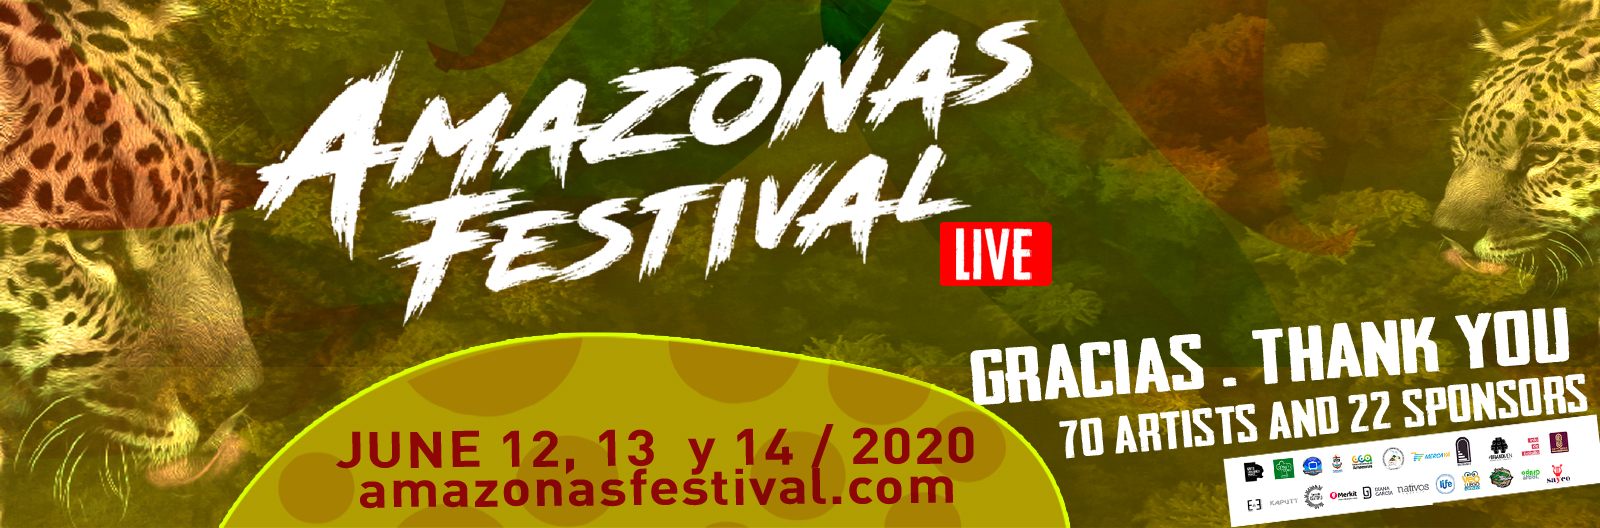 AMAZONAS FESTIVAL 2020, FIRST STREAMING LIVE CONCERT IN COLOMBIA.